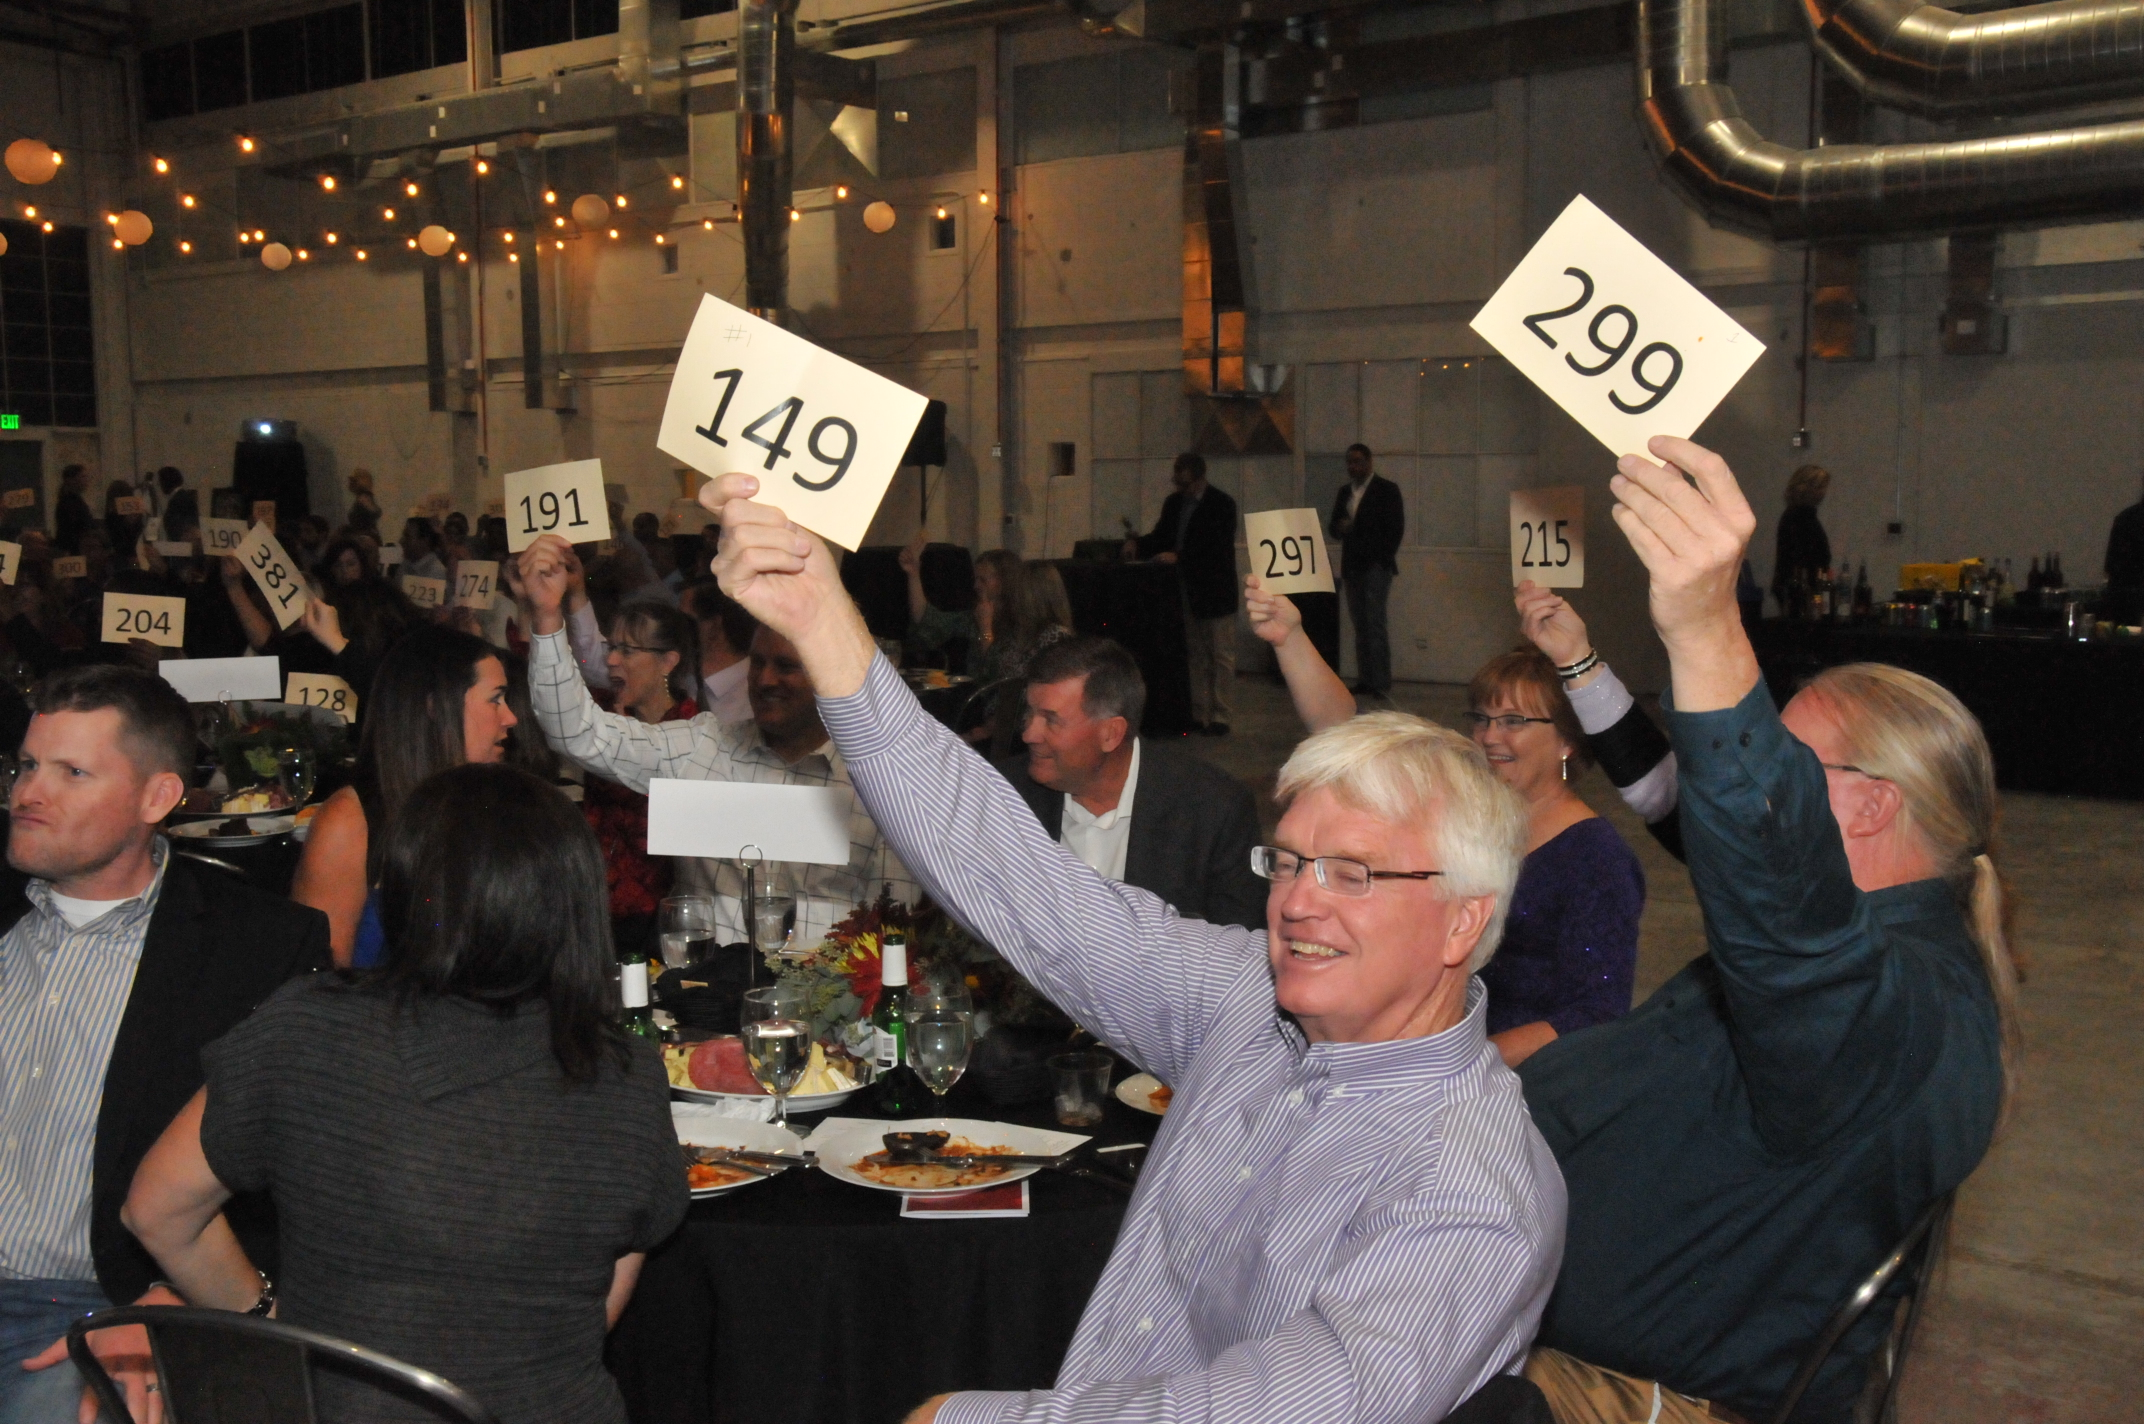 Guests enthusiastically bid on various live auction items for How to bid at a live auction